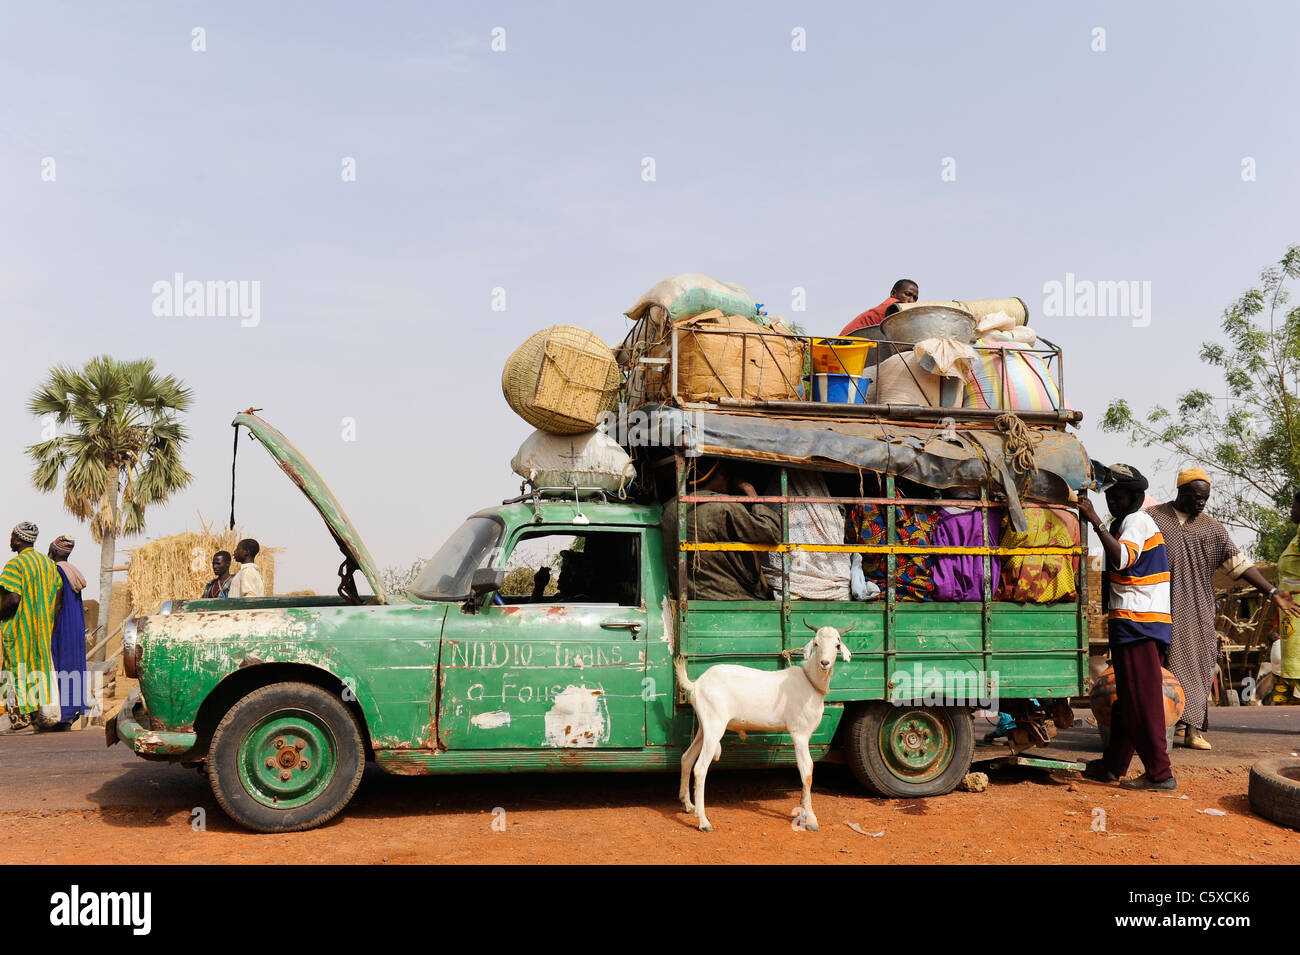 Africa MALI Mopti, people in old Peugeot car which works as a public transport in villages - Stock Image